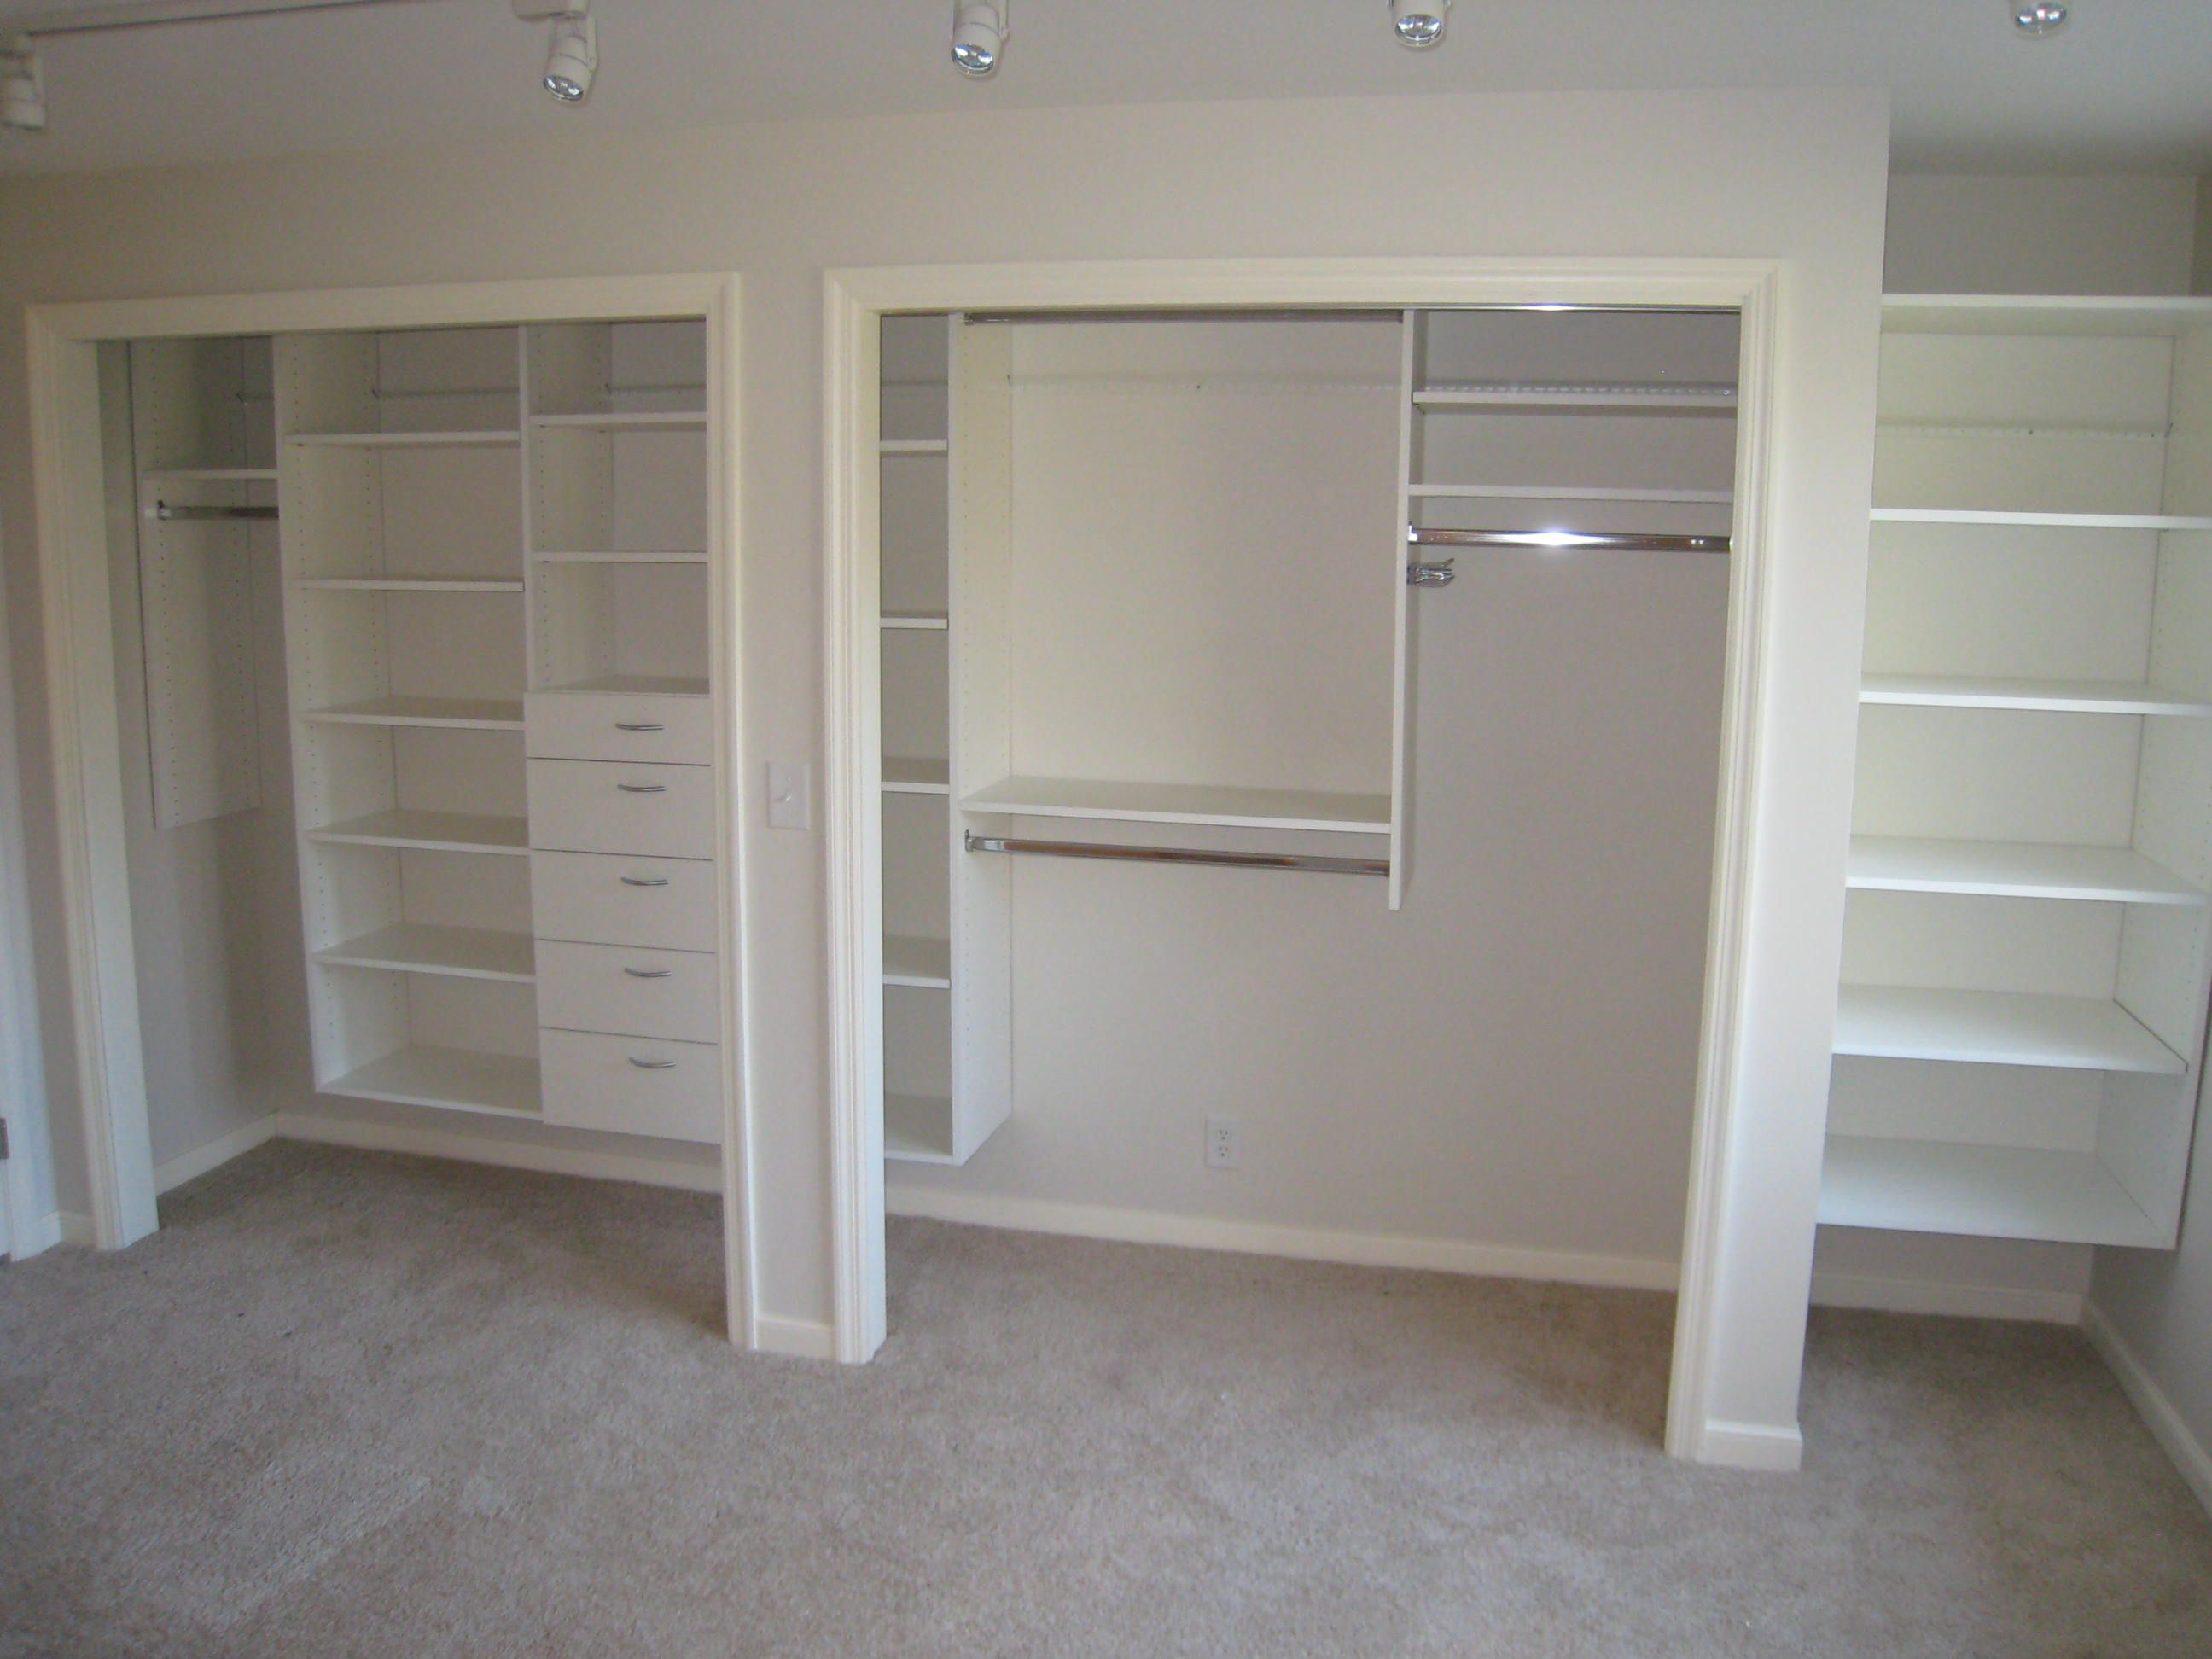 Reach In Closet Organization  Add Vertical Shelving With Drawers Or Pull  Out Bins To